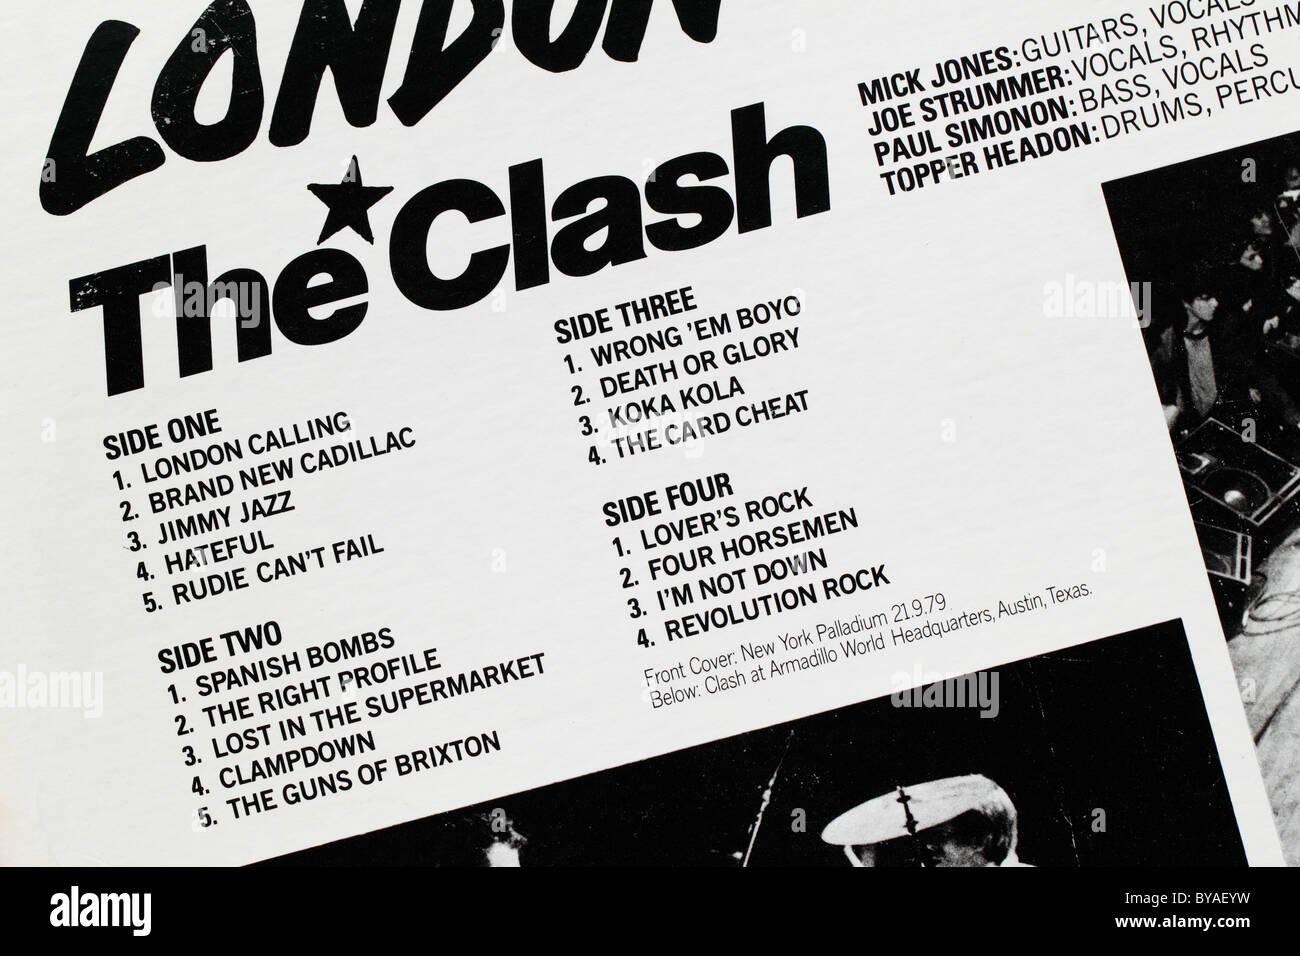 Tracks and band members listed on the back cover of an LP record by the Clash: London Calling. - Stock Image